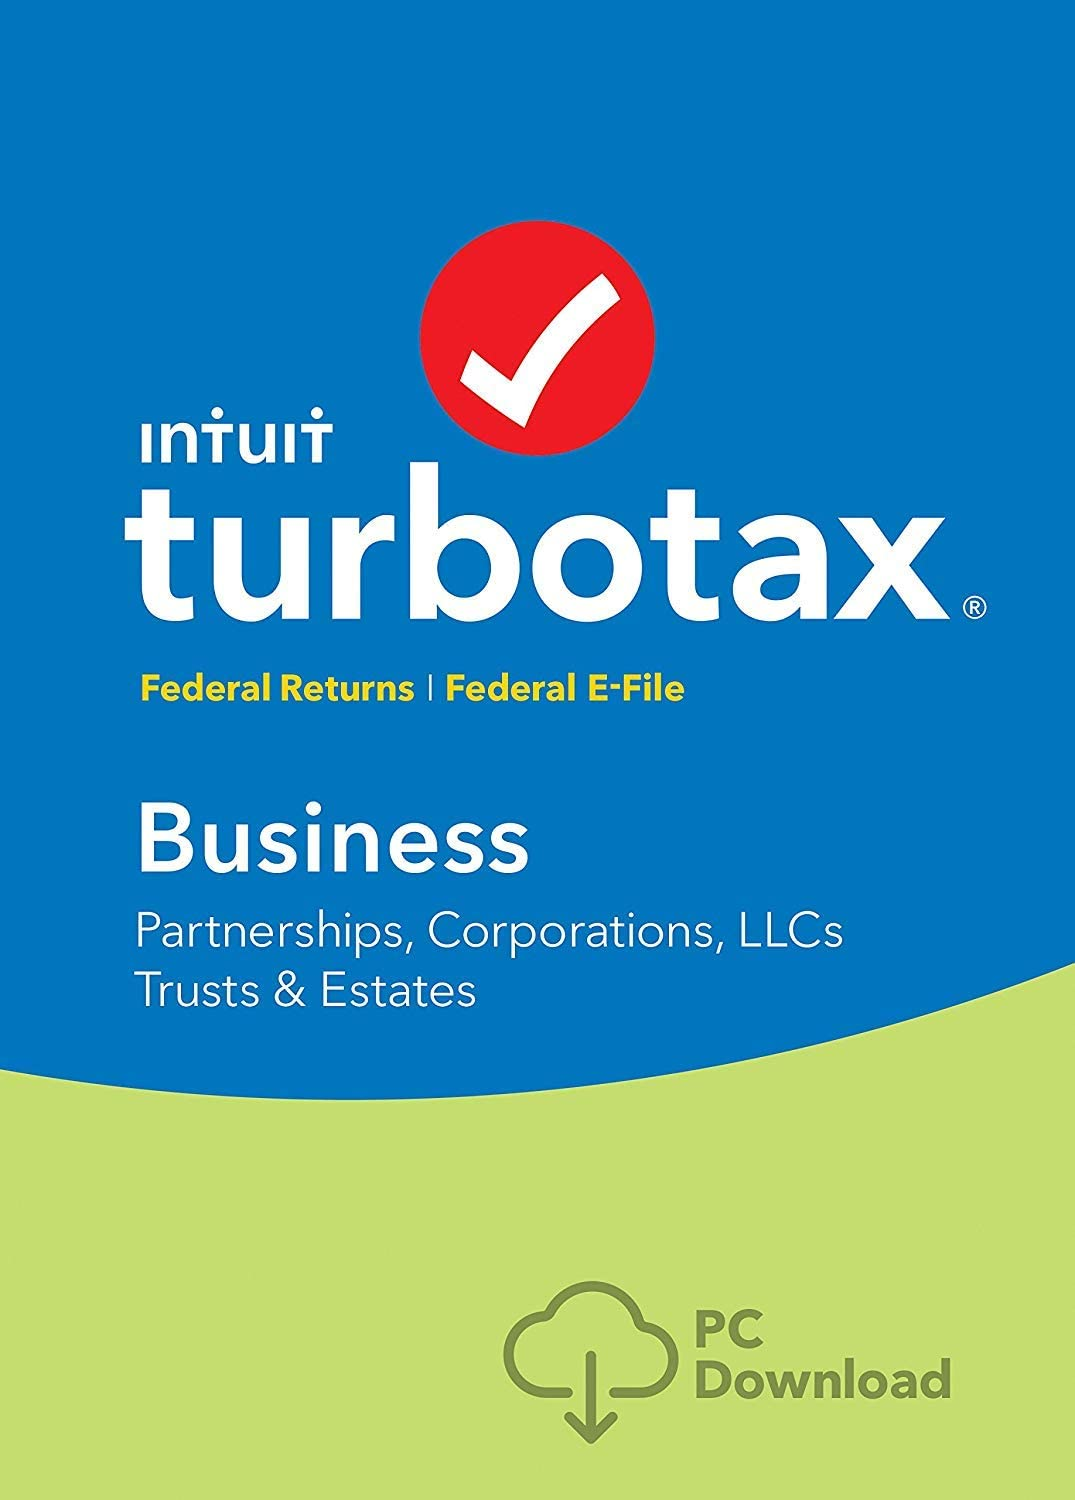 TurboTax Business 2018 (Partnerships, Corporations, LLCs, Trusts & Estates) [PC Download]